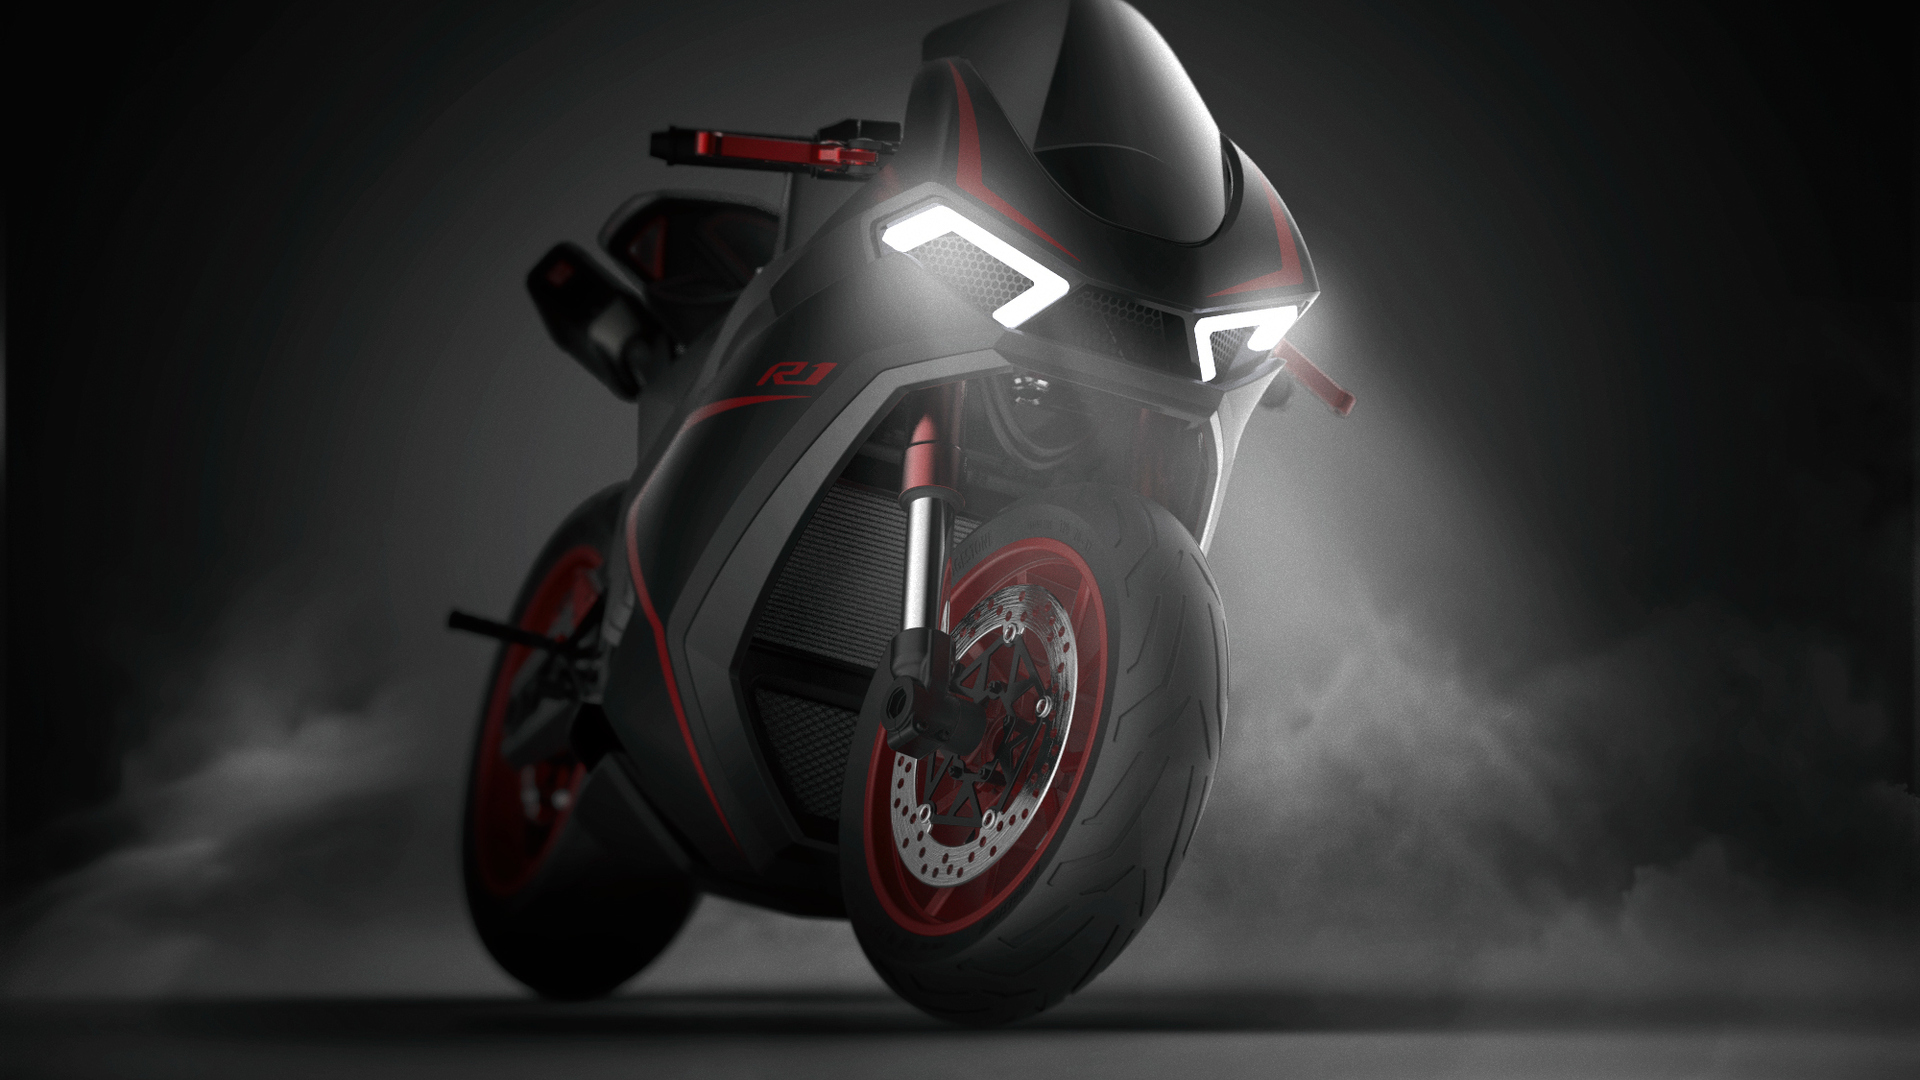 1920x1080 Yamaha R1 Concept Laptop Full HD 1080P HD 4k